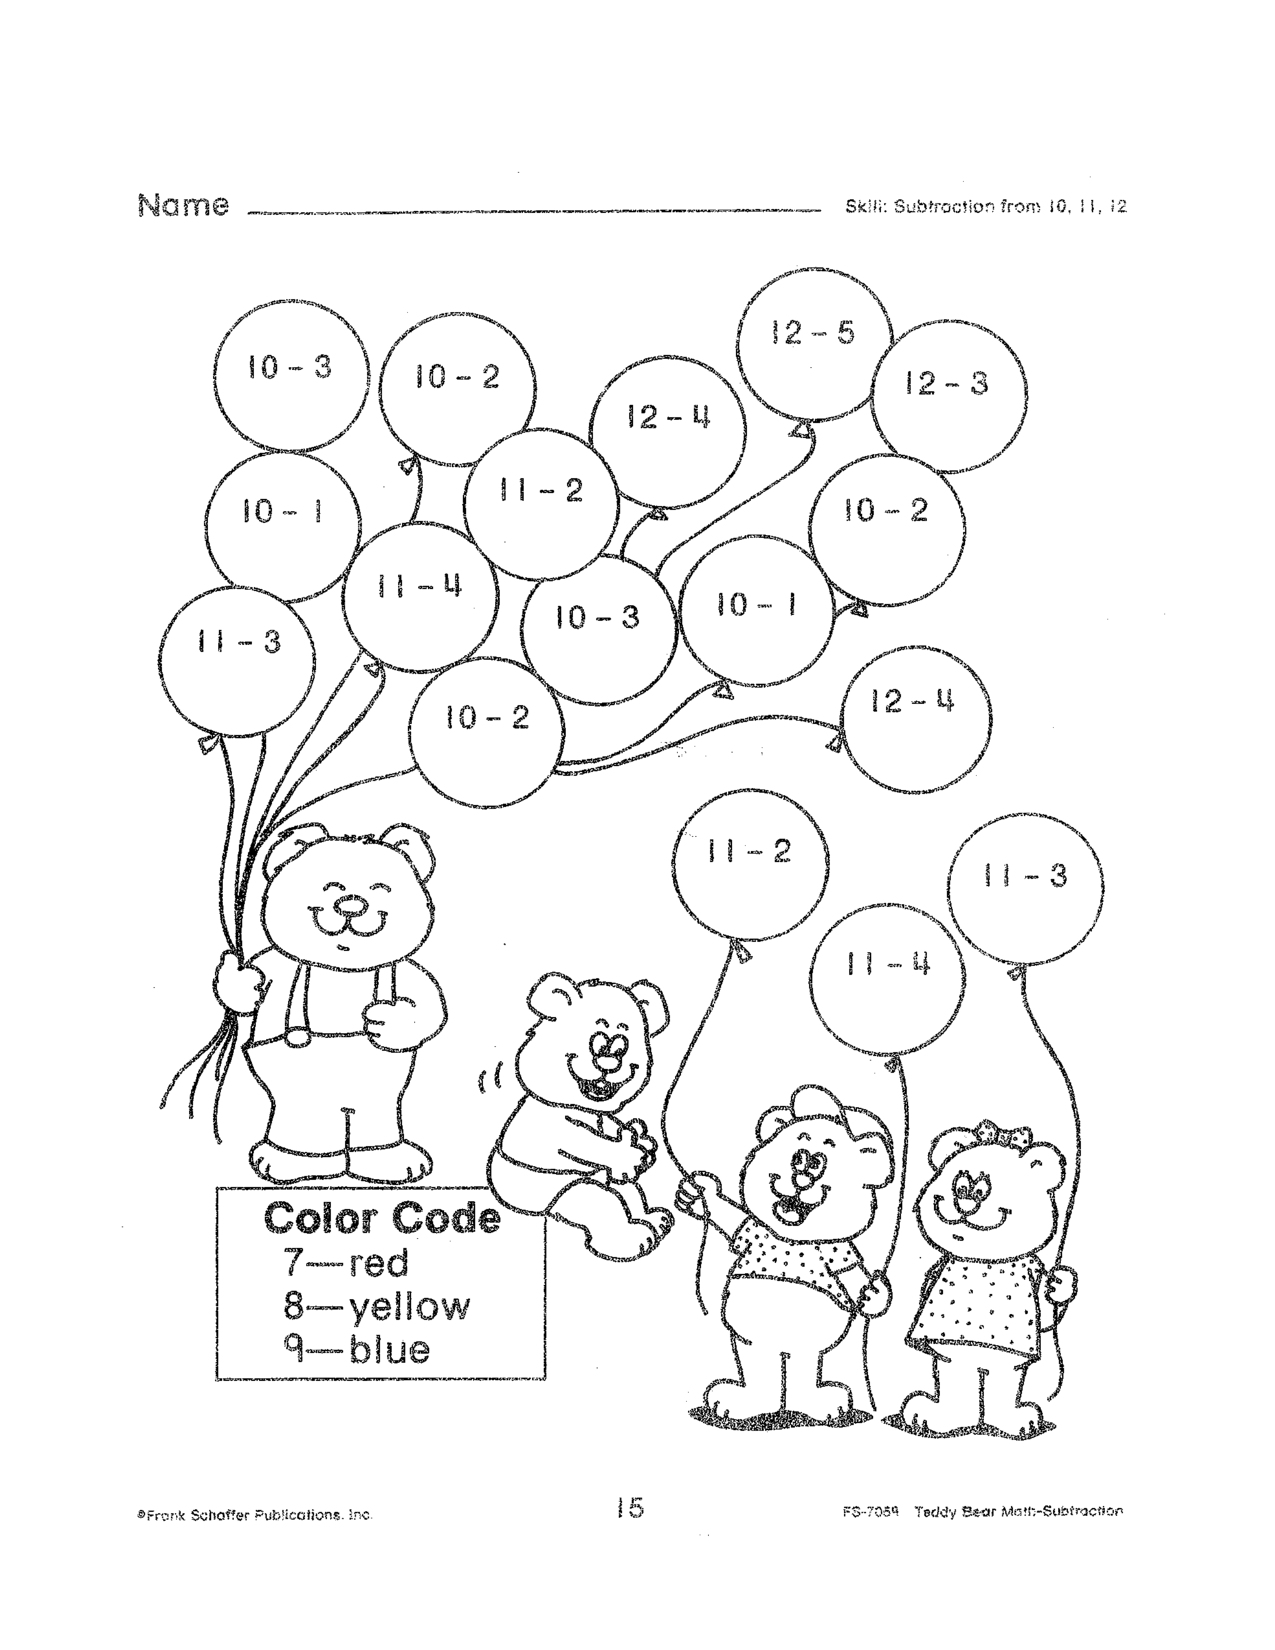 Worksheet Free Worksheets For Grade 2 free printable worksheets for grade 2 memarchoapraga maths year k5 learning worksheets